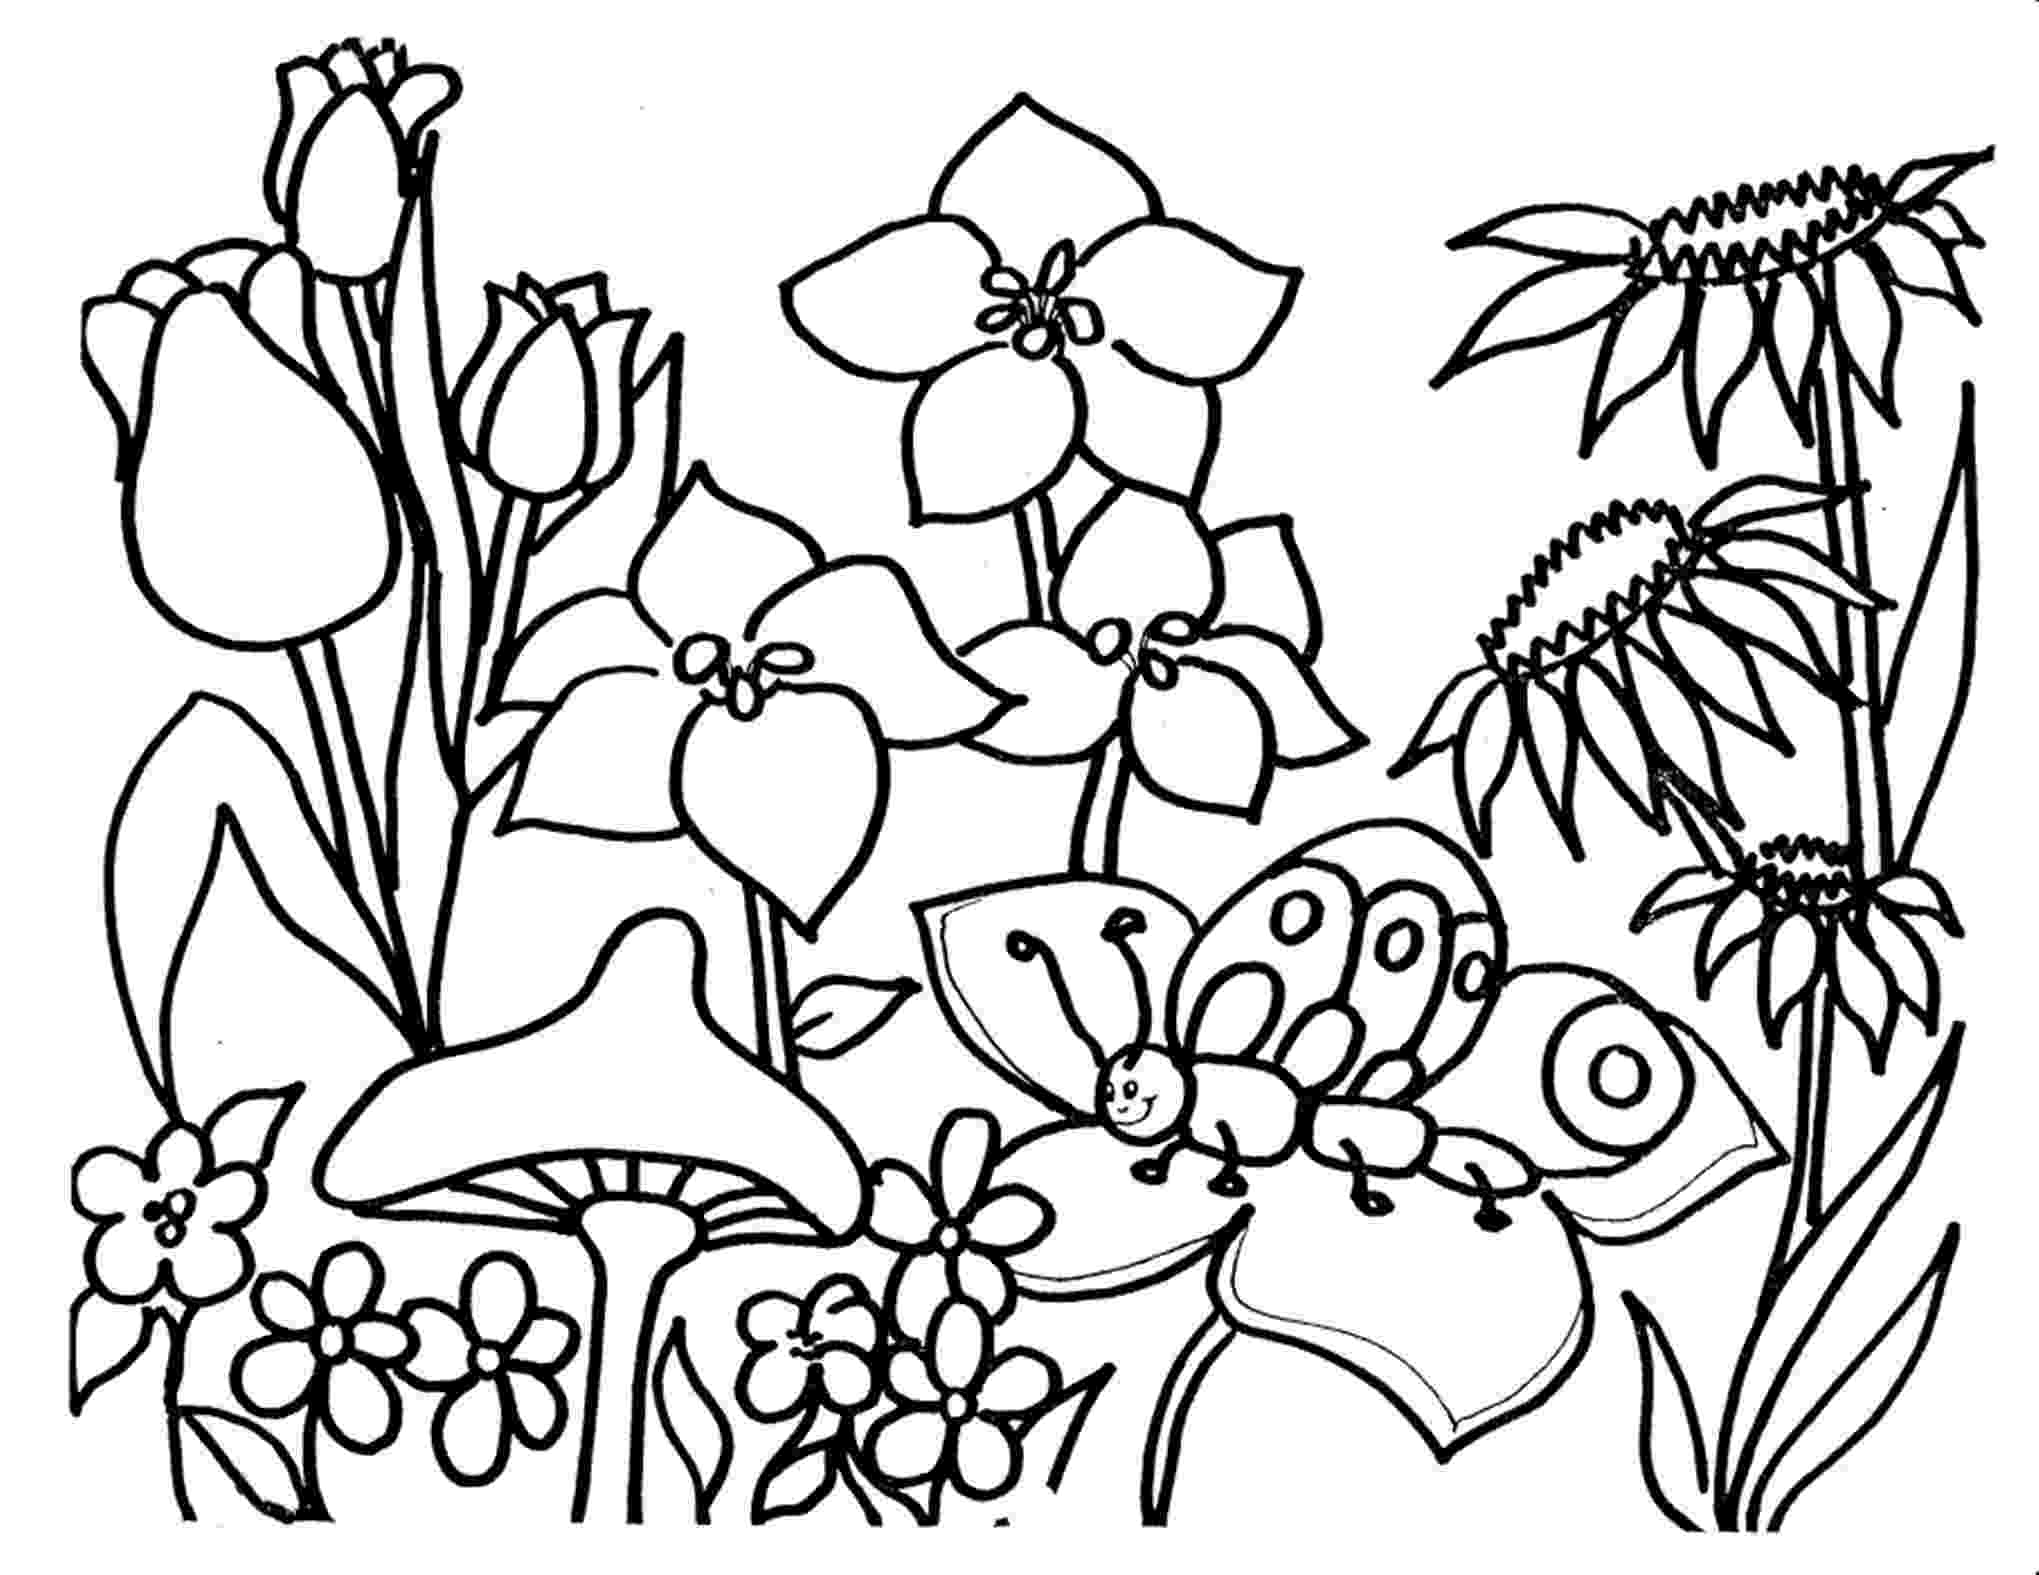 flowers colouring free printable flower coloring pages for kids best flowers colouring